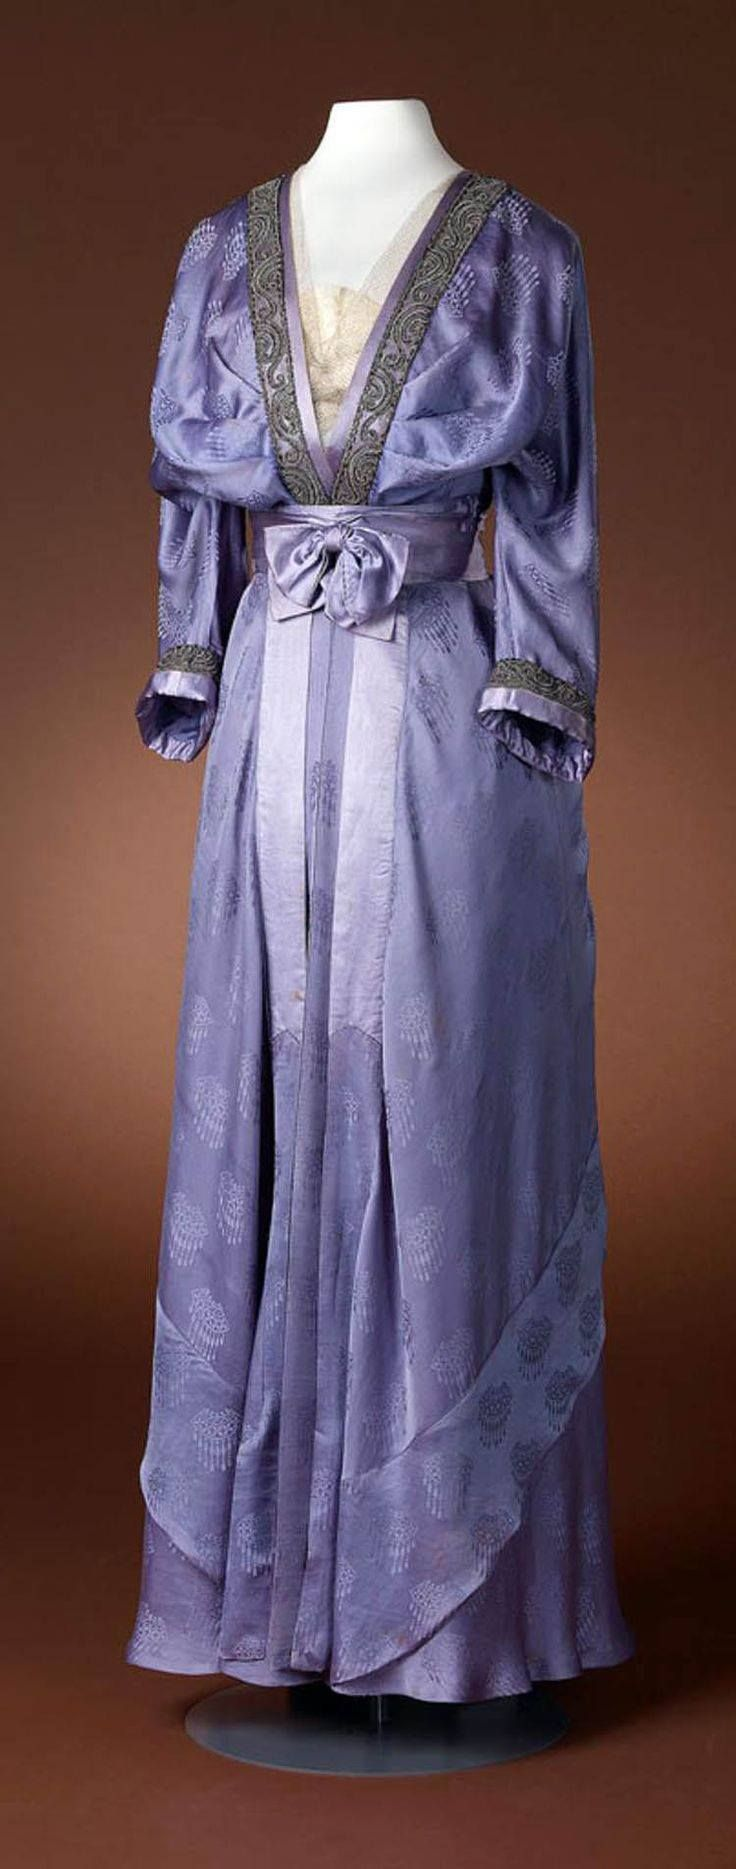 """edwardian-time-machine: """"Dress, Hirsch & Cie, ca. 1910-15. Three-piece purple or lilac gown with long-sleeved bodice, deep V-neck, belt, and skirt. Belt or waistband is pleated and has bow. Amsterdam Museum. Source """""""